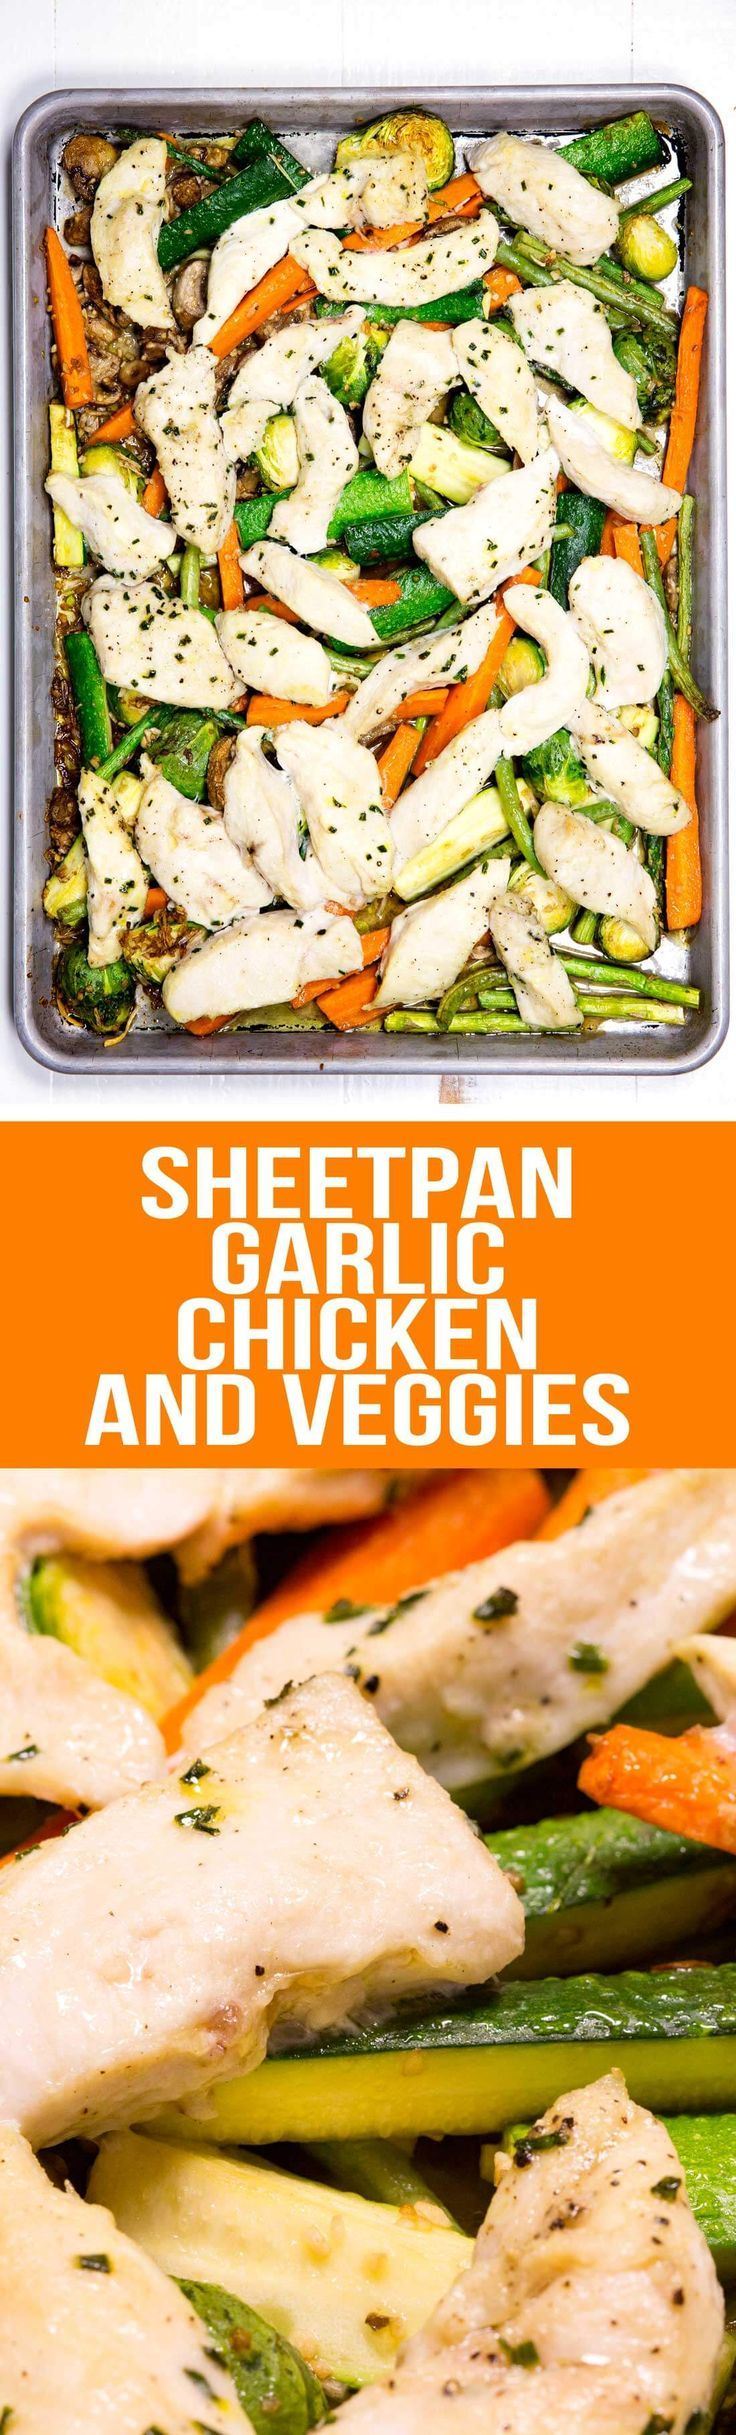 One pan is all you need to make this garlic and onion chicken and veggies.